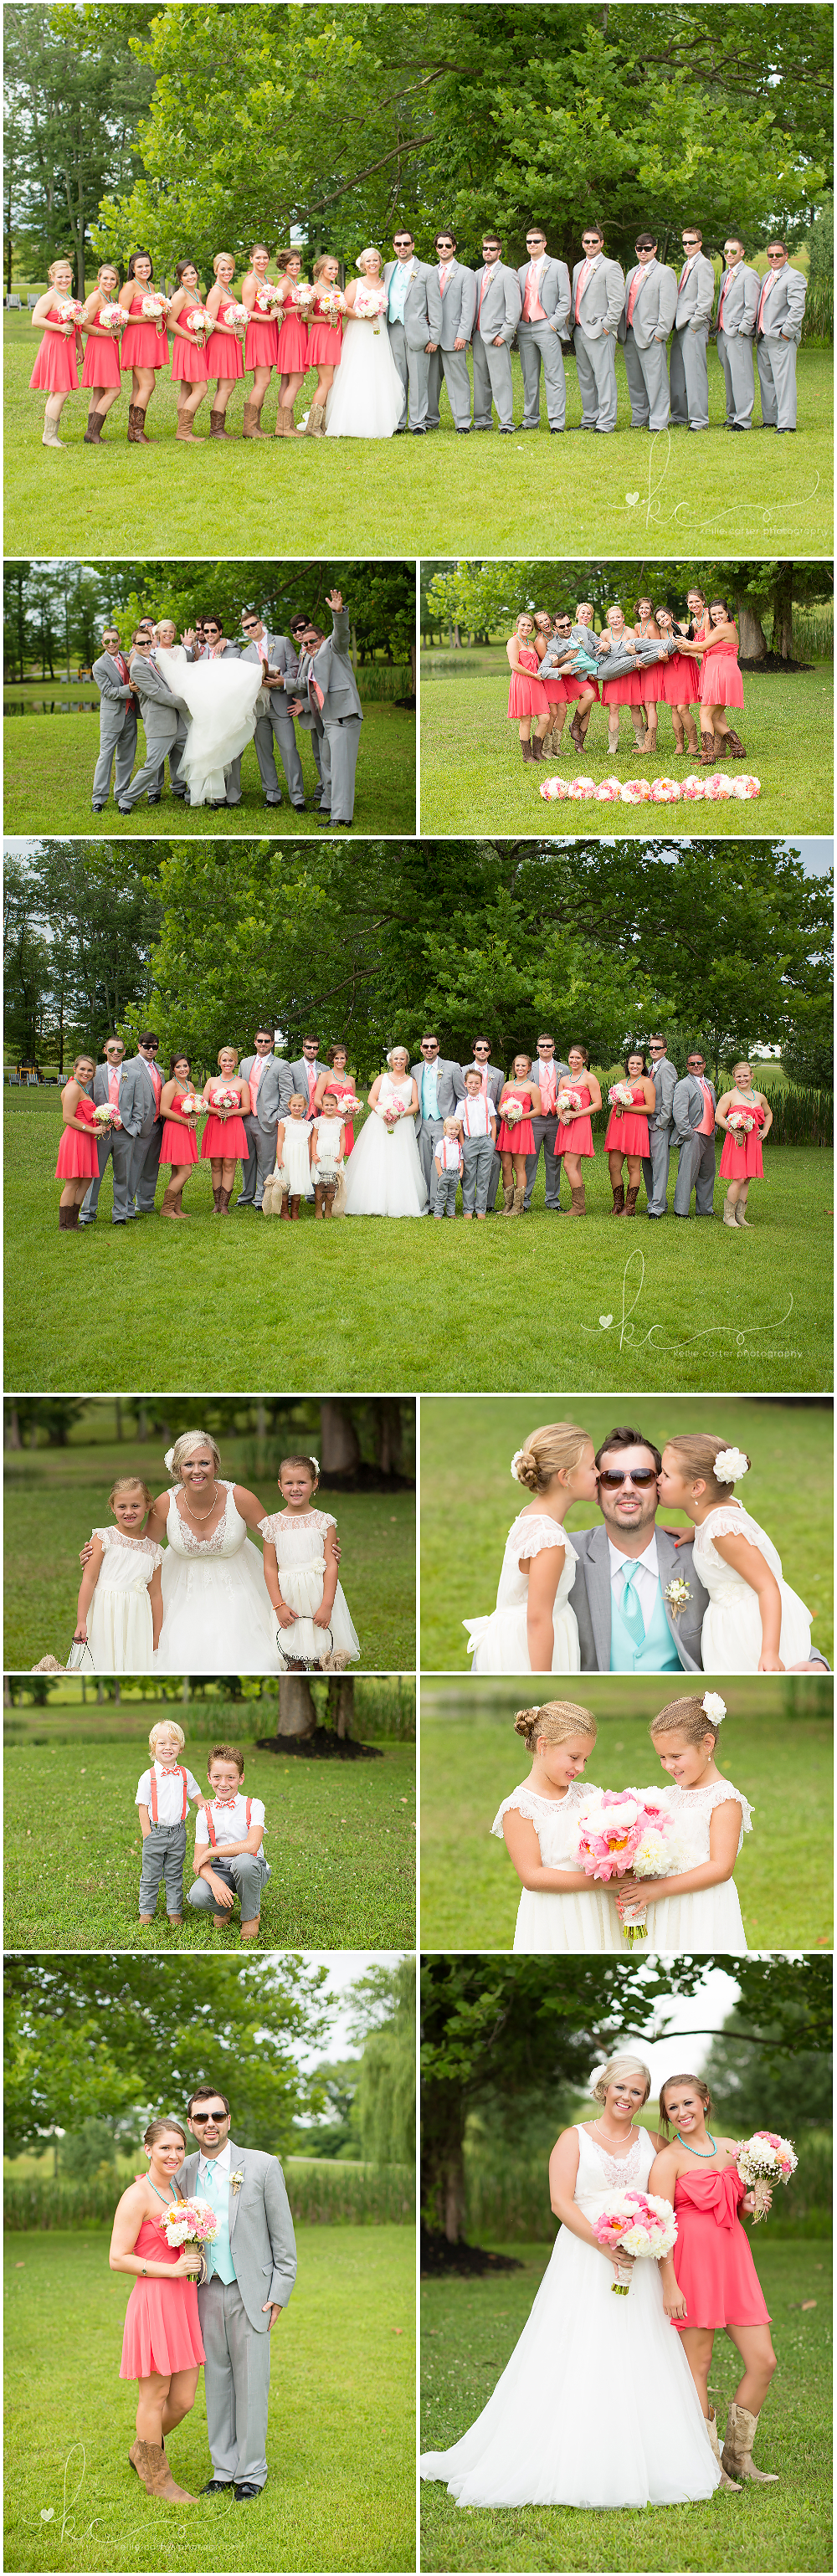 KellieCarterPhotography31 Ashley & Matt are Married {Somerset, KY Wedding Photographer}